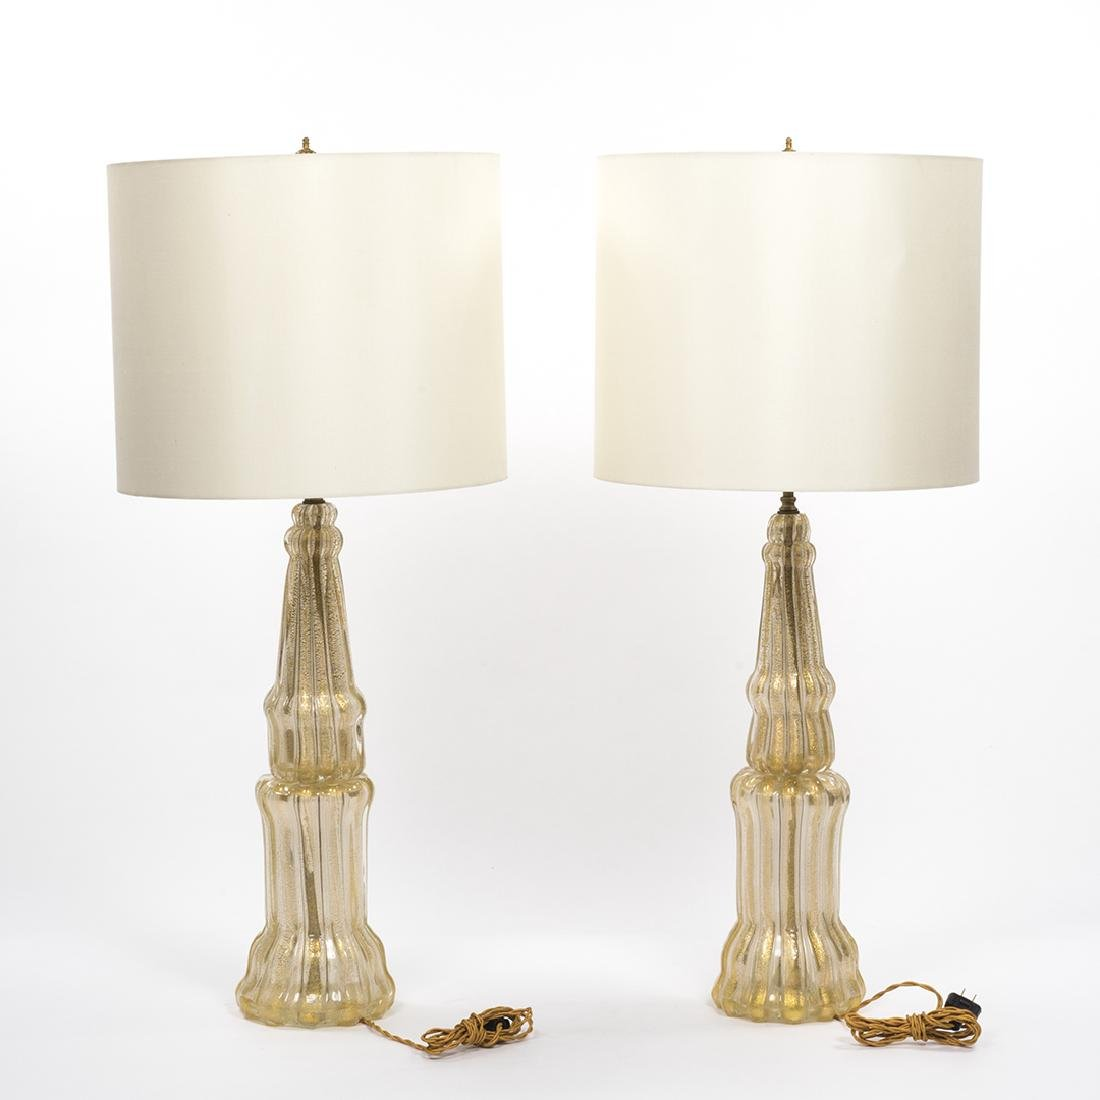 Barovier and Toso Murano Glass Lamps (2) - 2